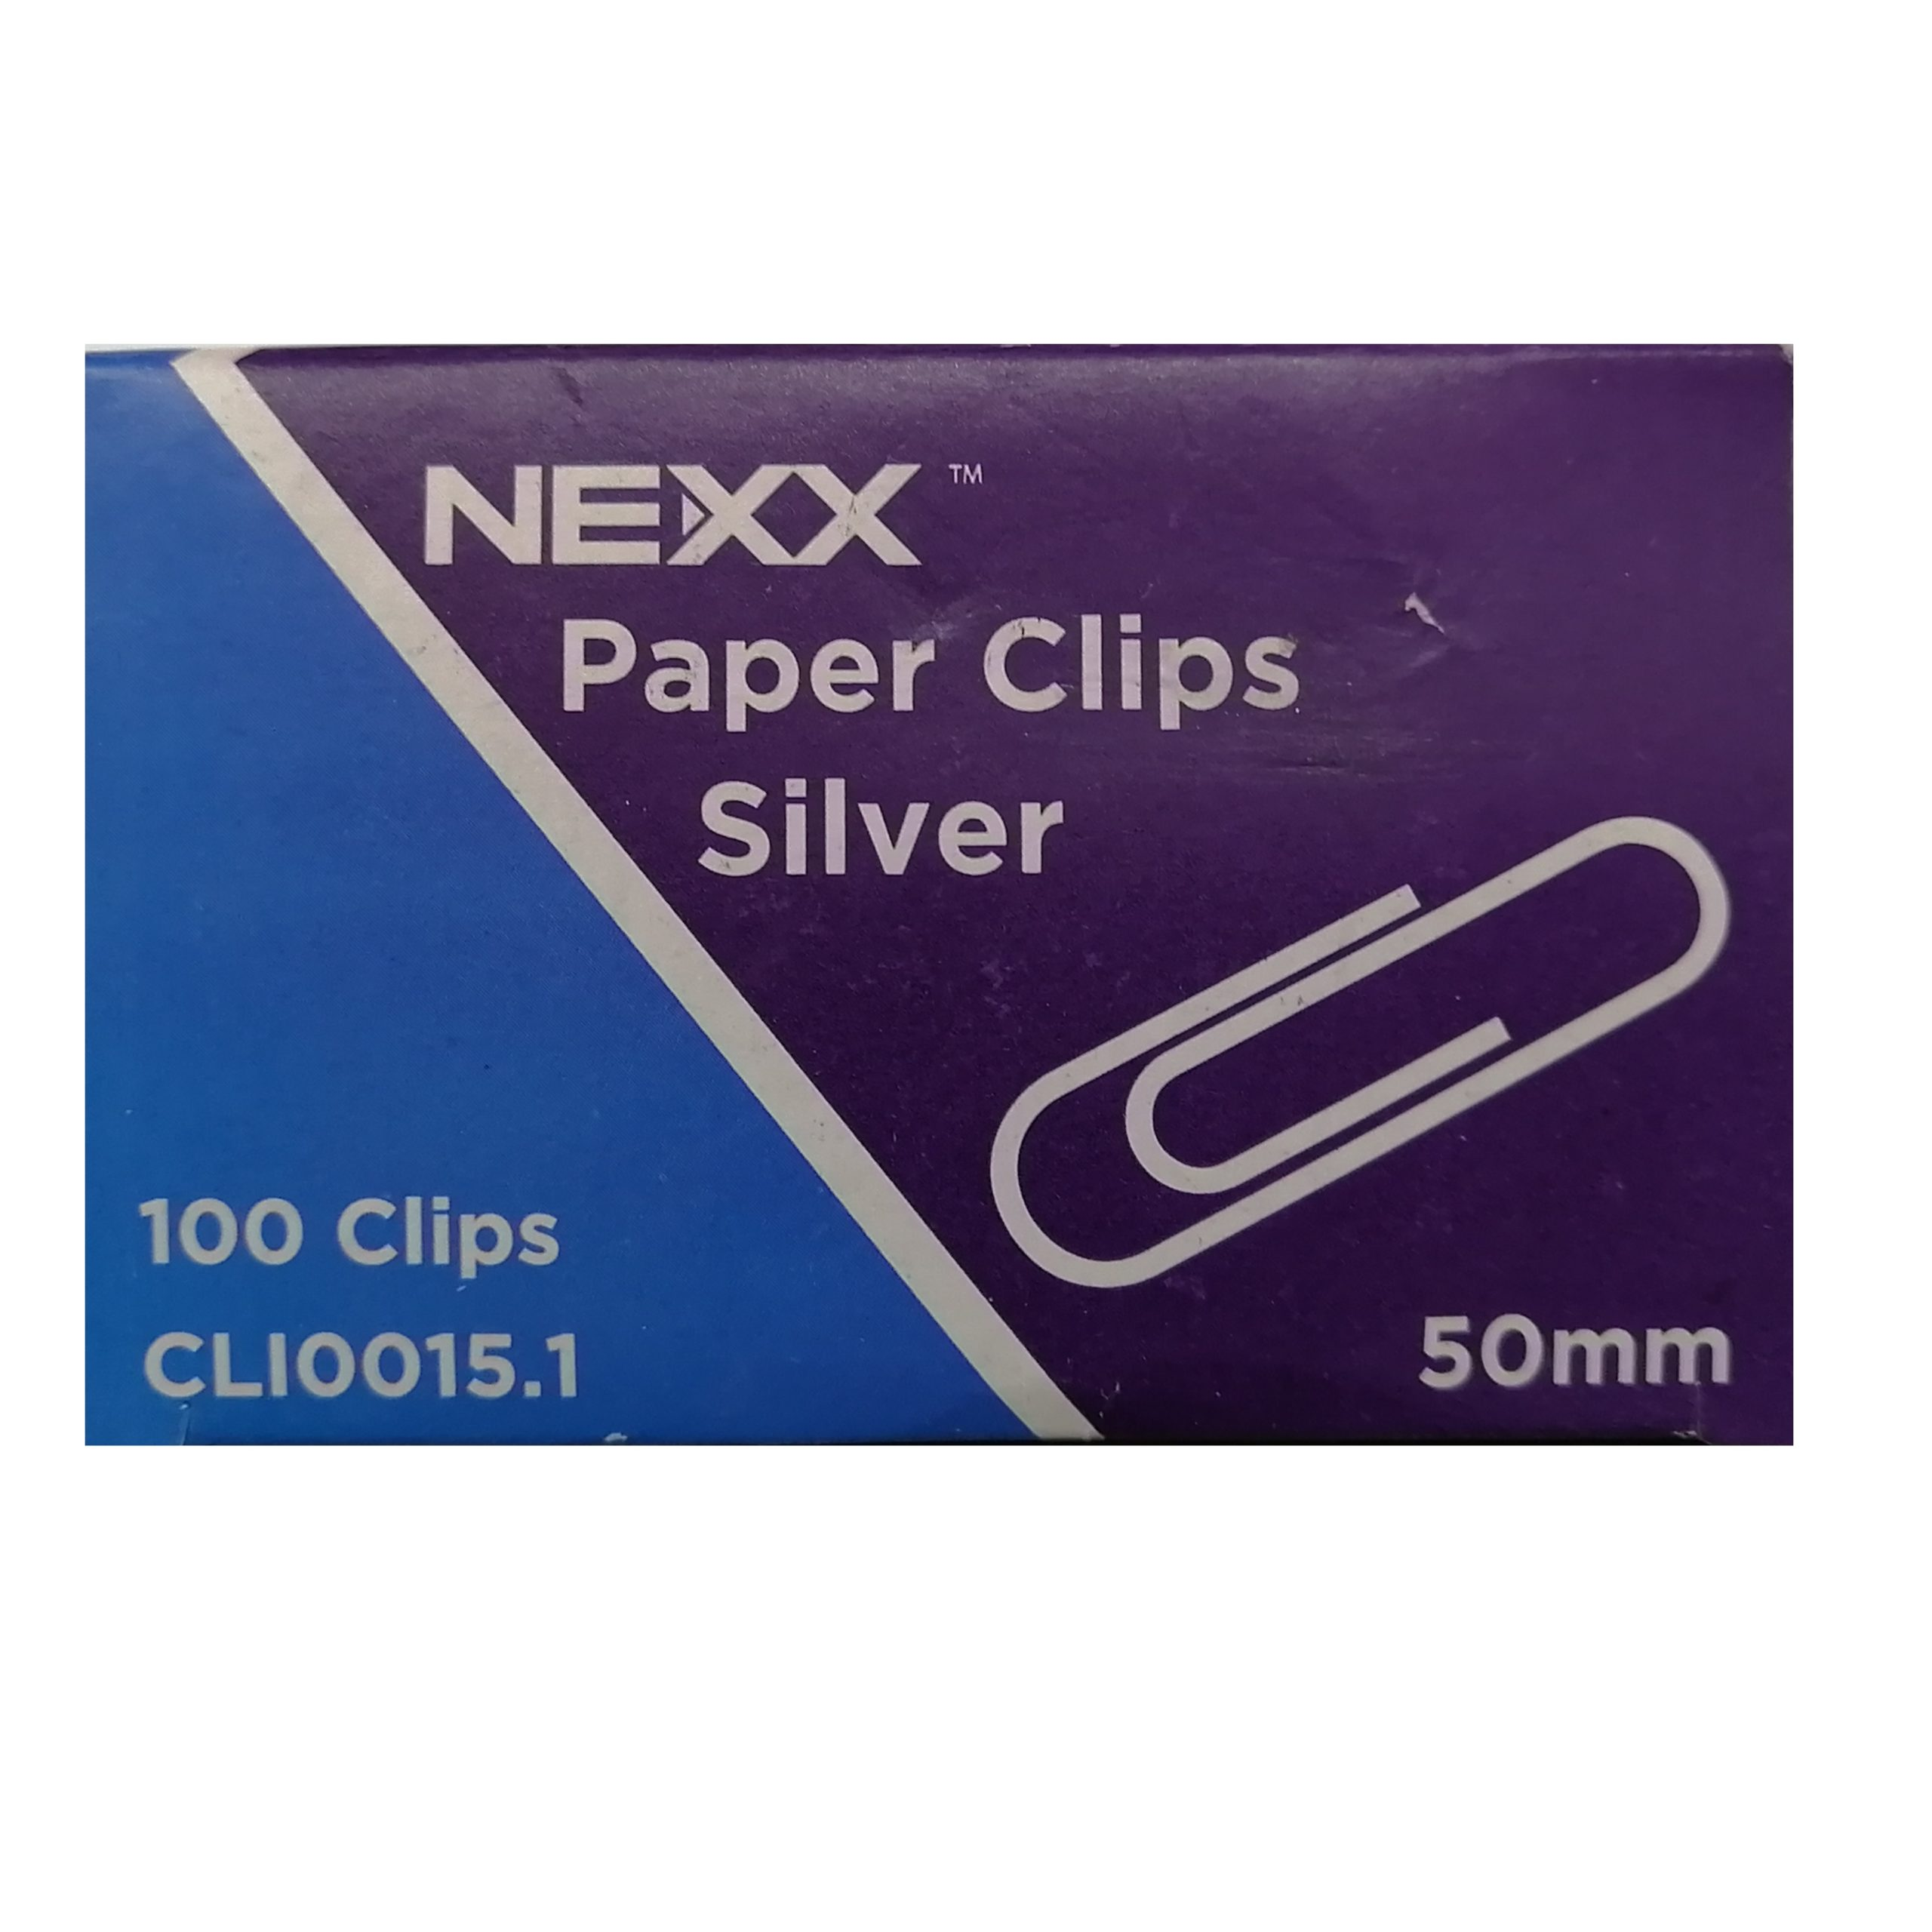 PAPER CLIPS 50MM SILVER